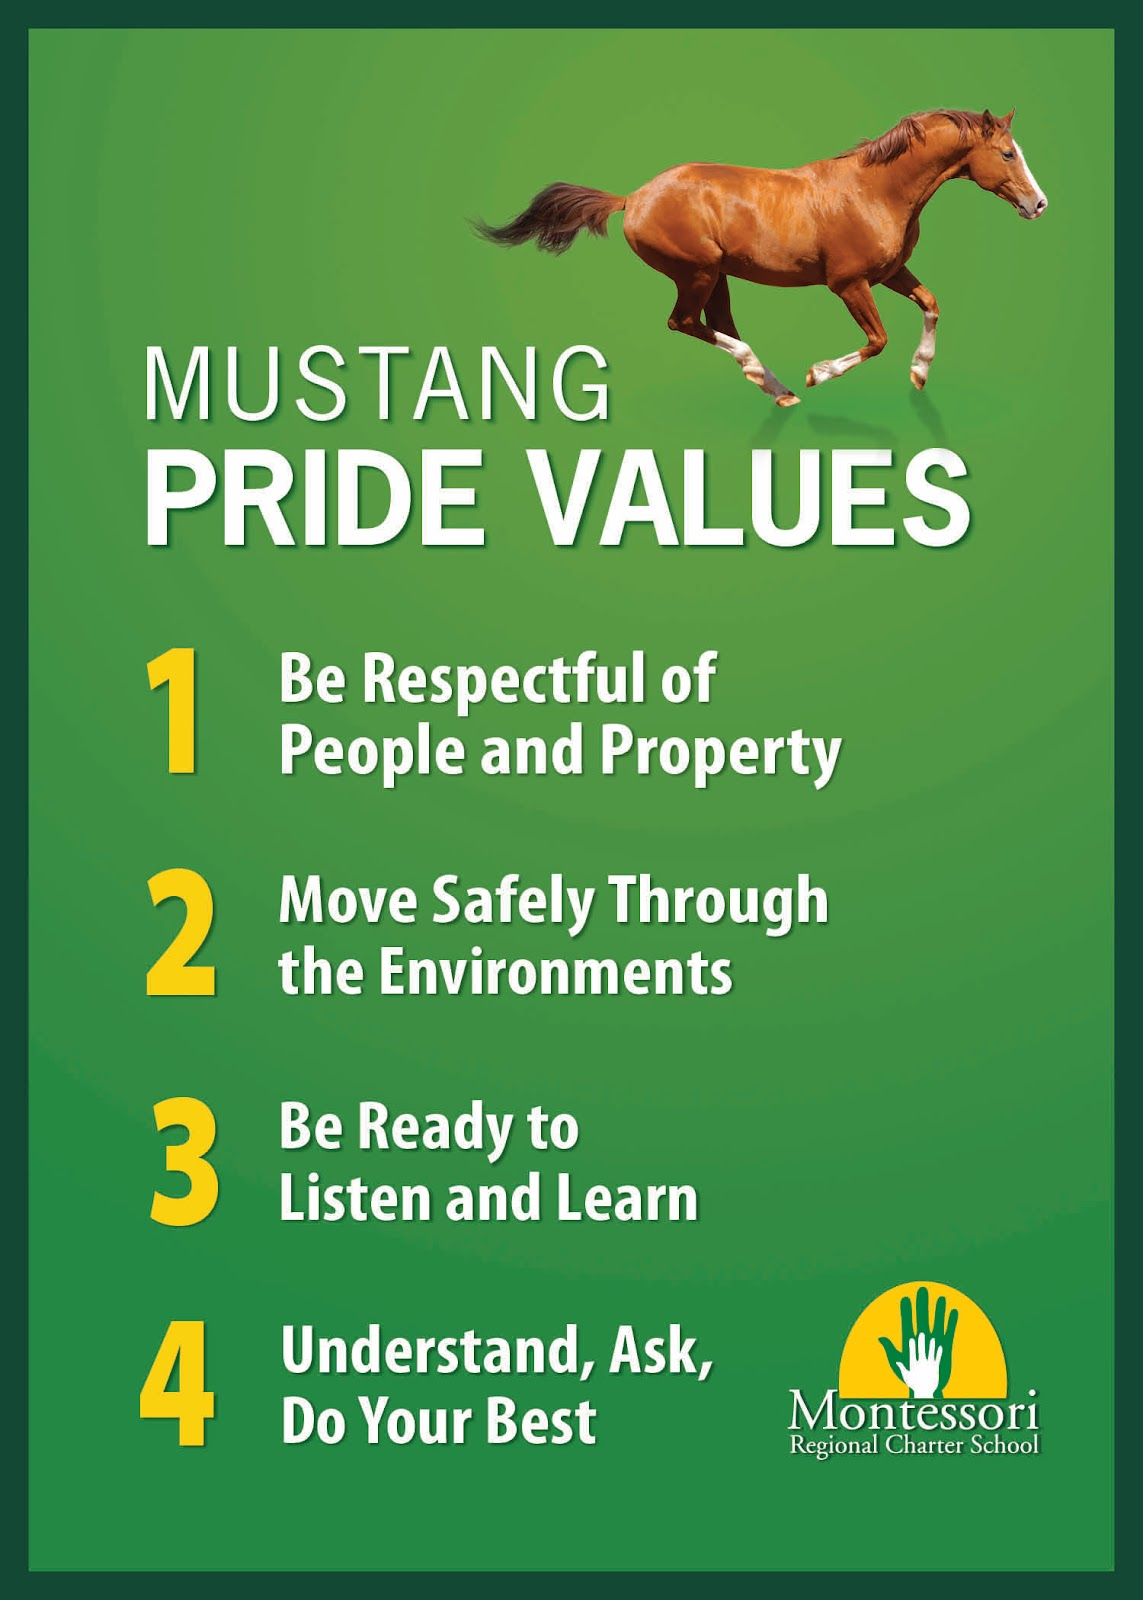 Mustang-Pride-Values-.jpg